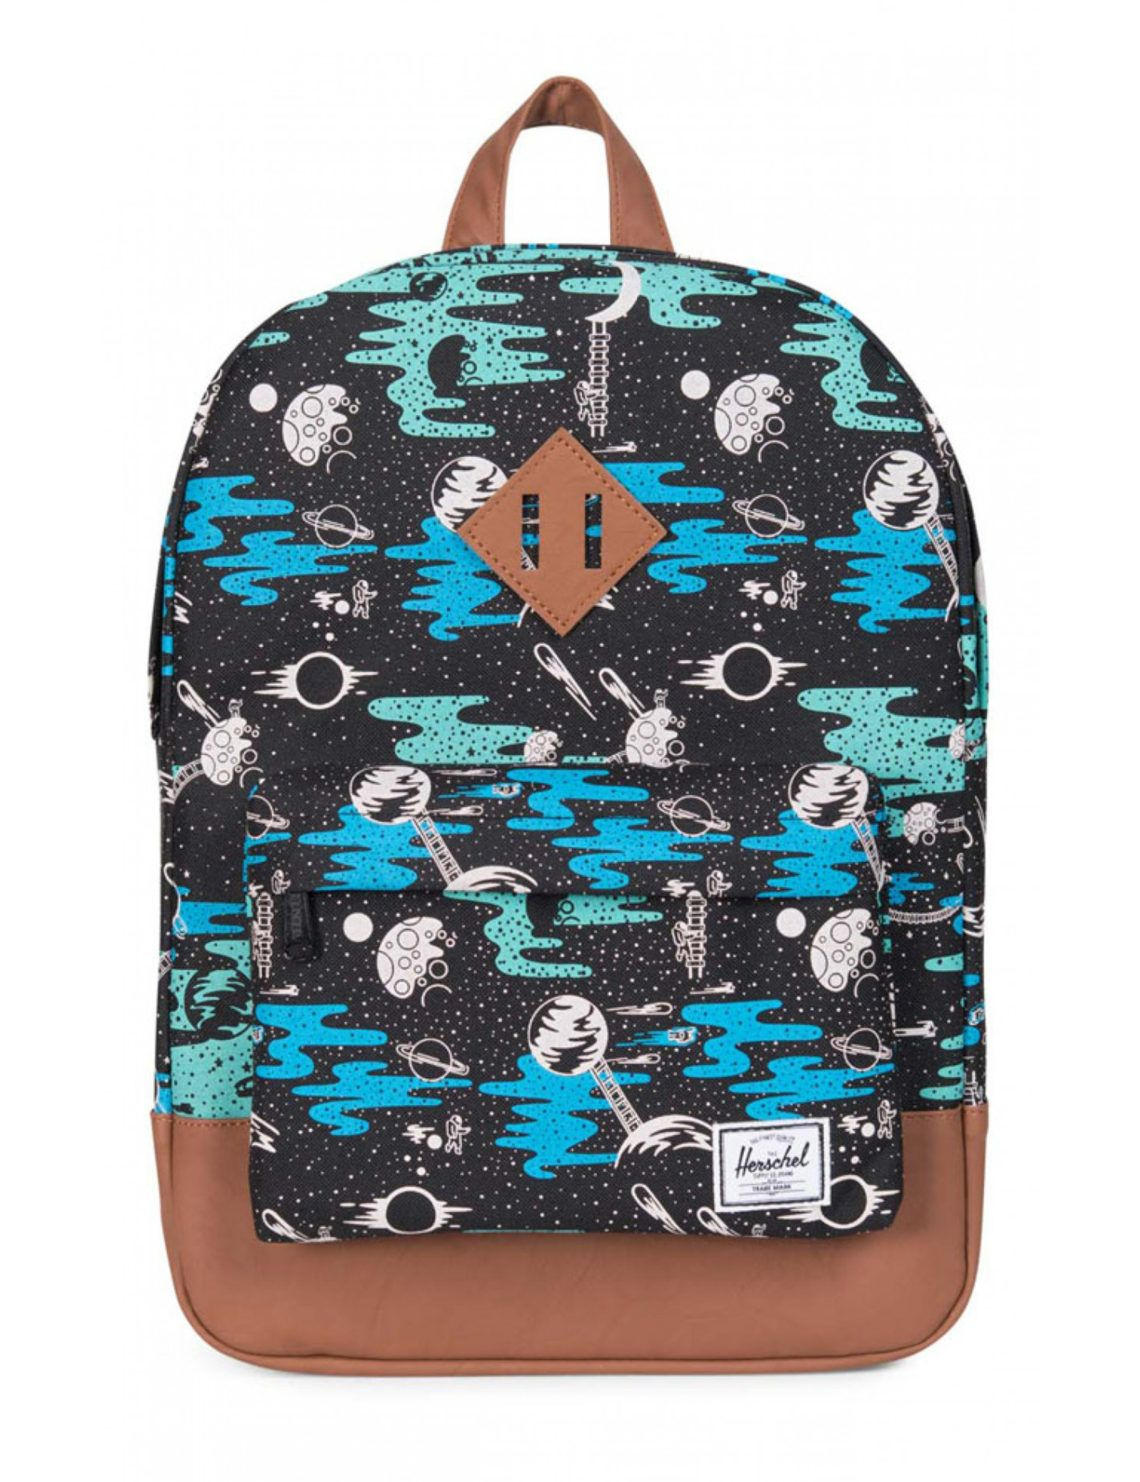 57d75c6b13dd Herschel-Space-Backpack